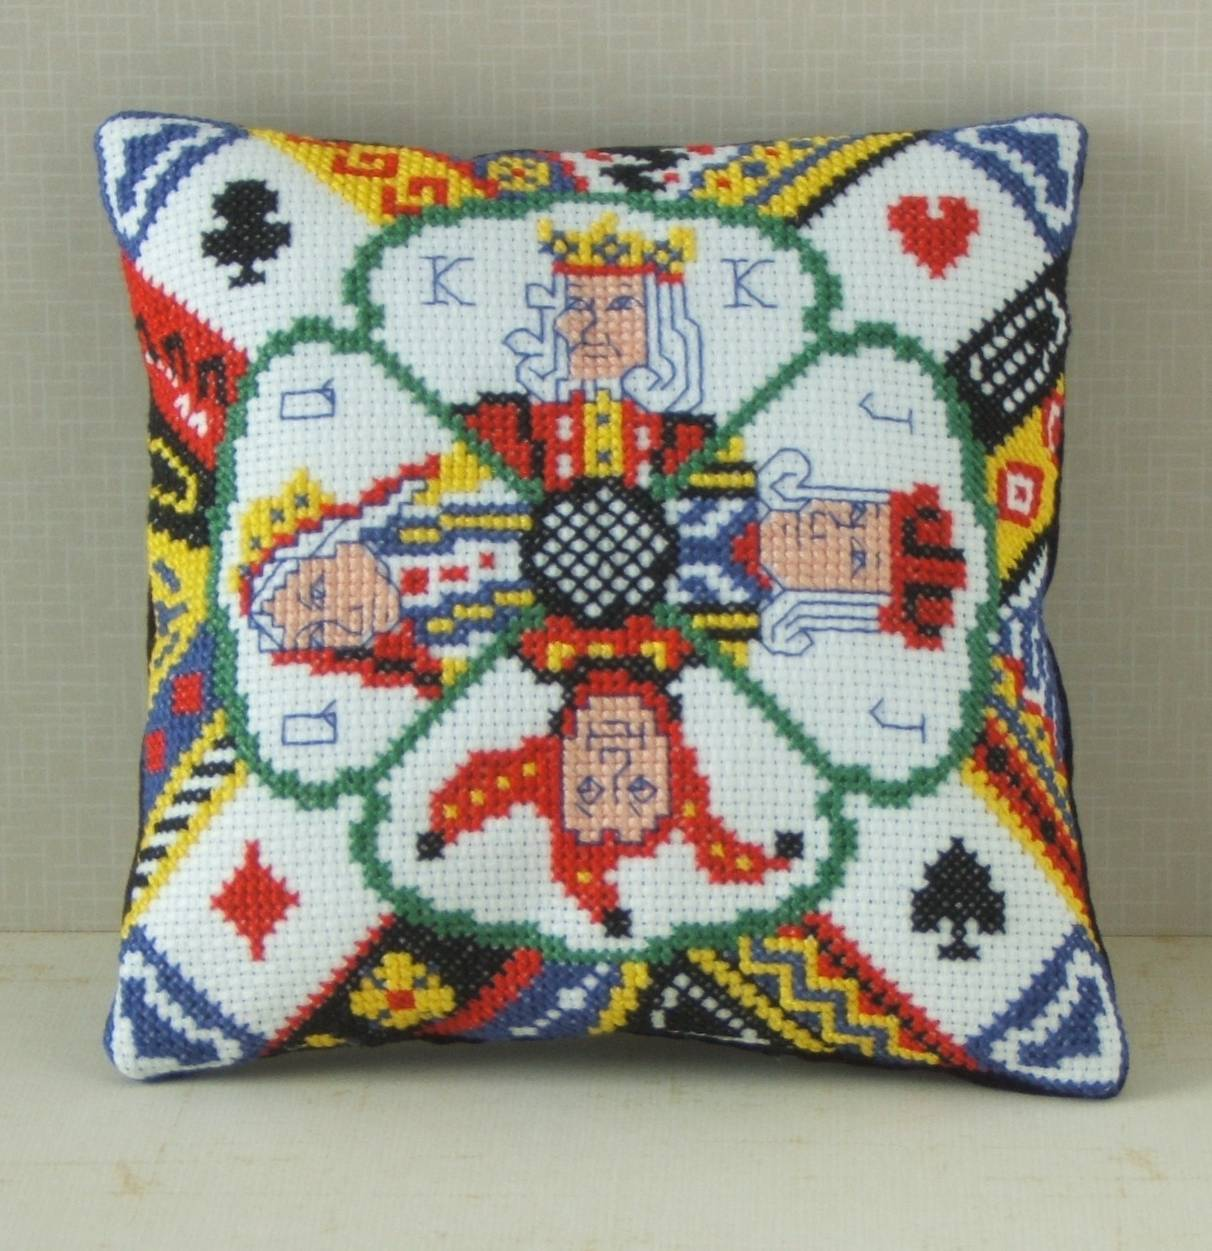 Joker in the Pack Mini Cushion kit